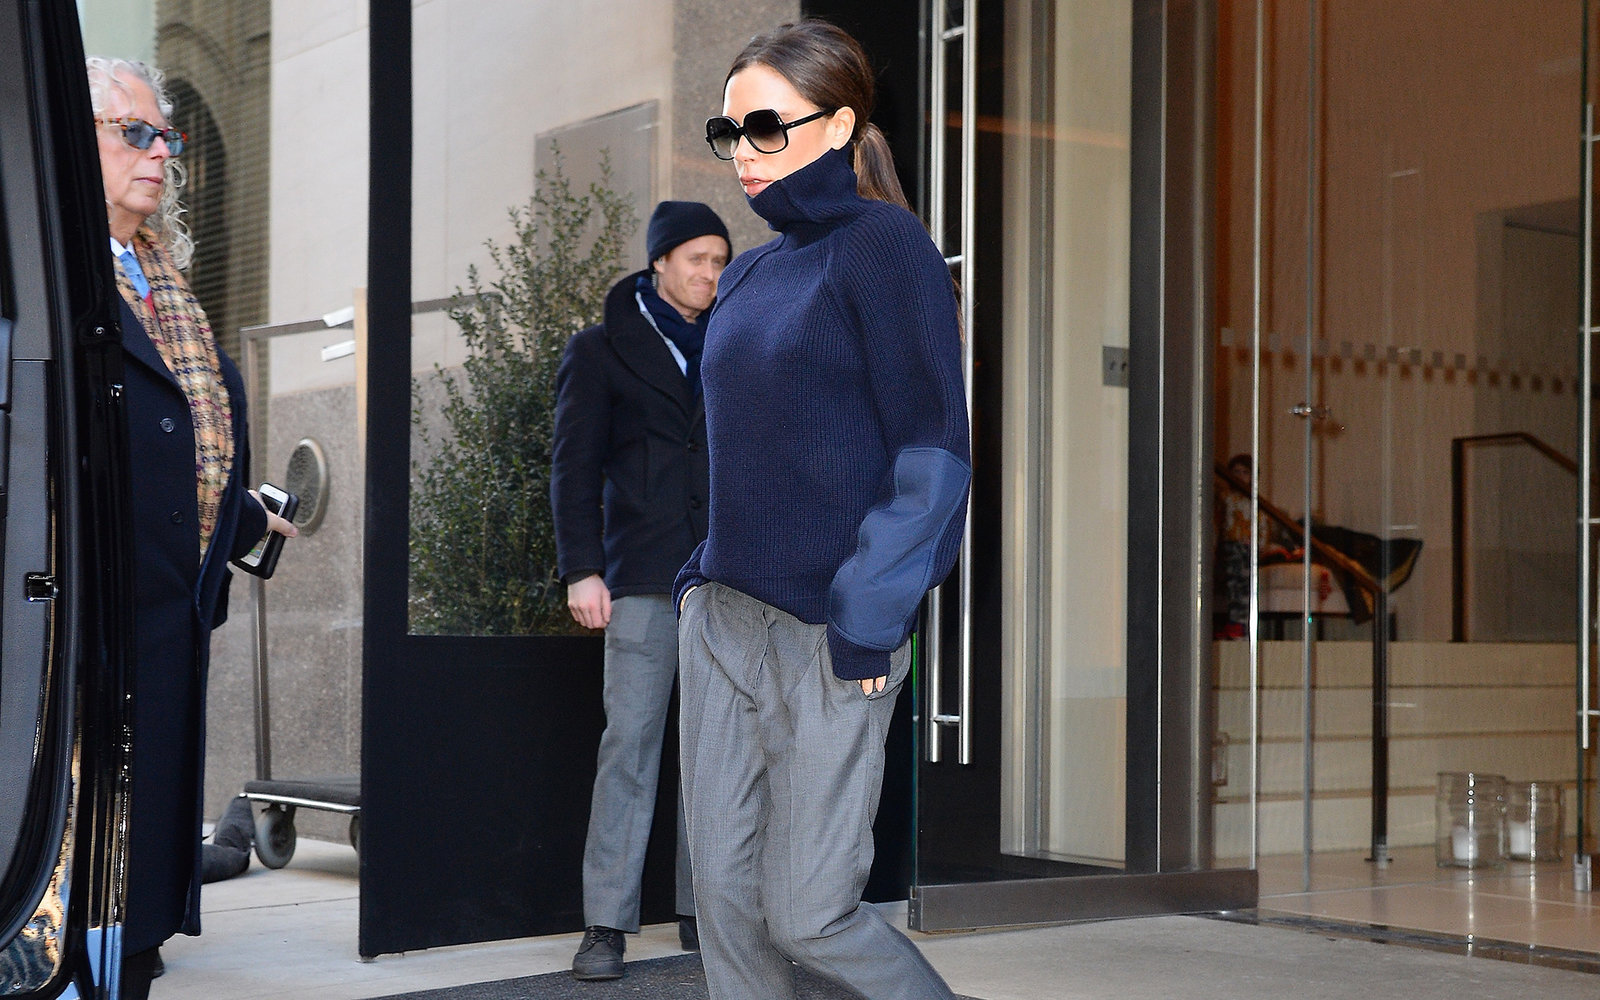 NEW YORK, NY - FEBRUARY 13:  Victoria Beckham is seen walking in soho in a Adidas Stan Smith shoes  on February 13, 2016 in New York City.  (Photo by Raymond Hall/GC Images)